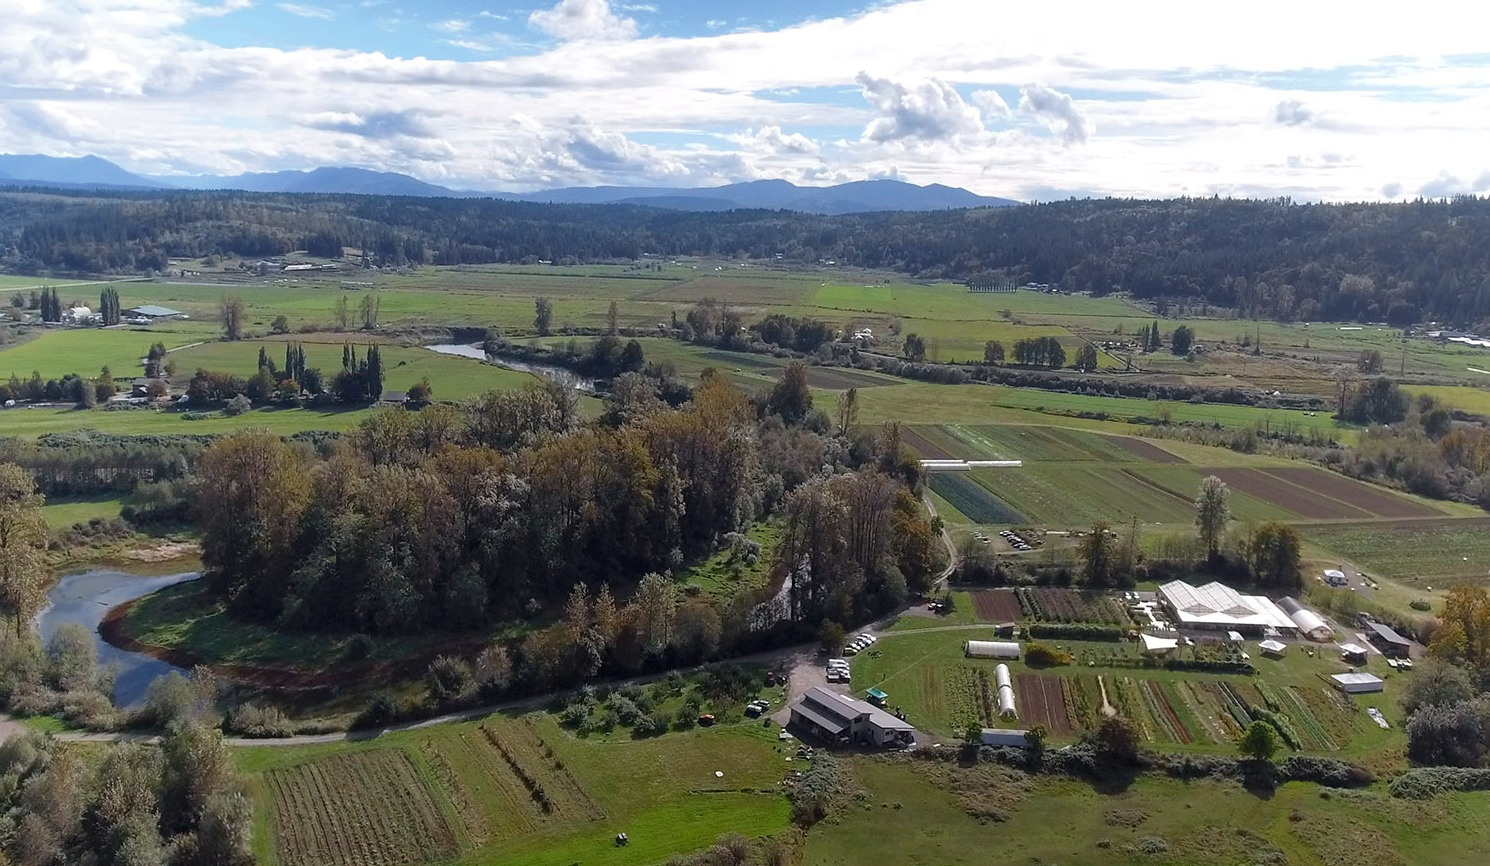 Uploaded by Oxbow Farm & Conservation Center